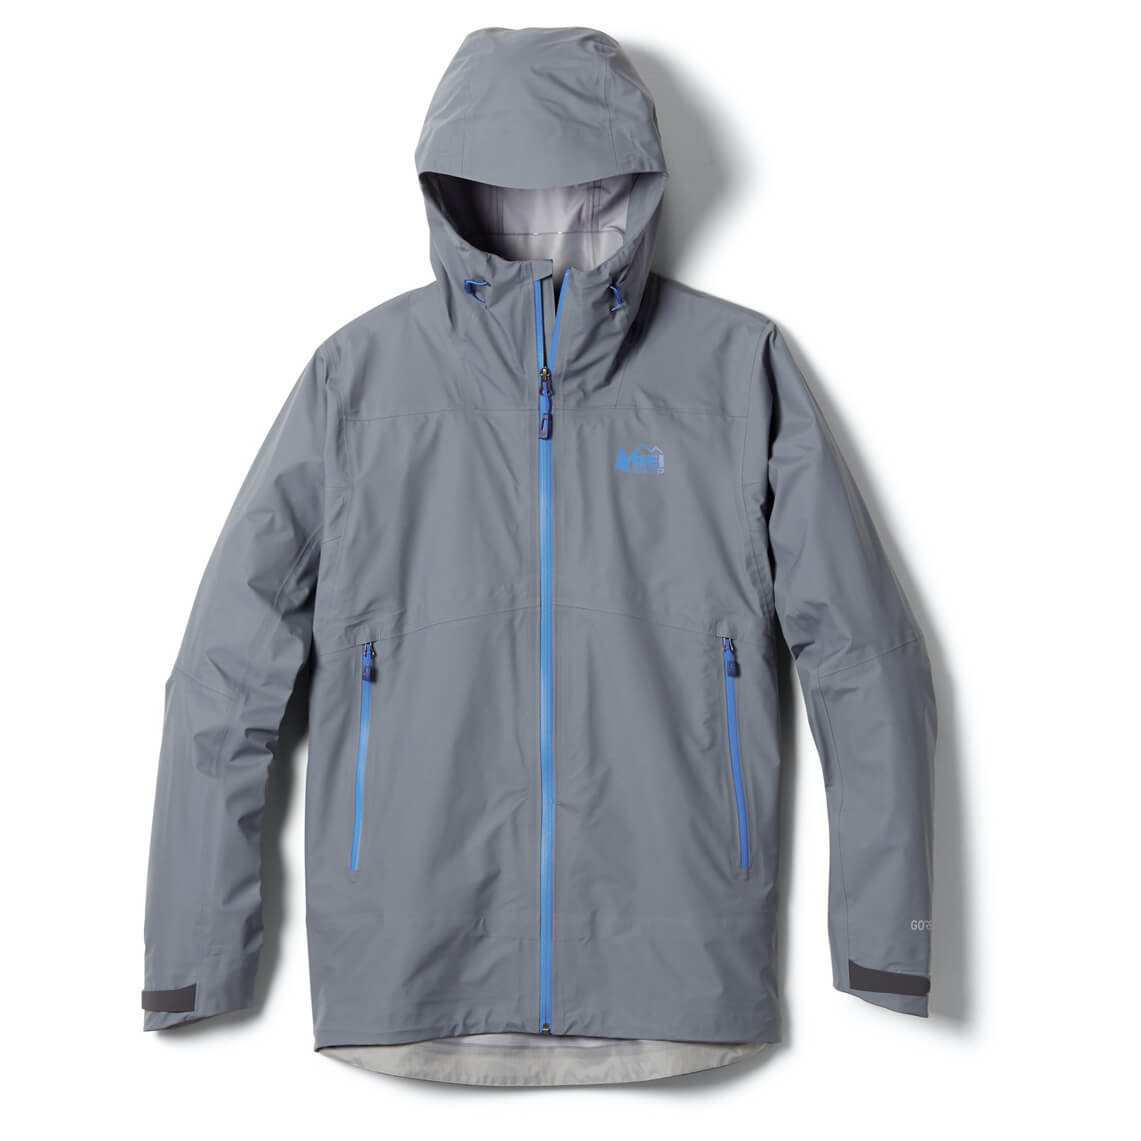 REI Co-op Drypoint GTX Jacket